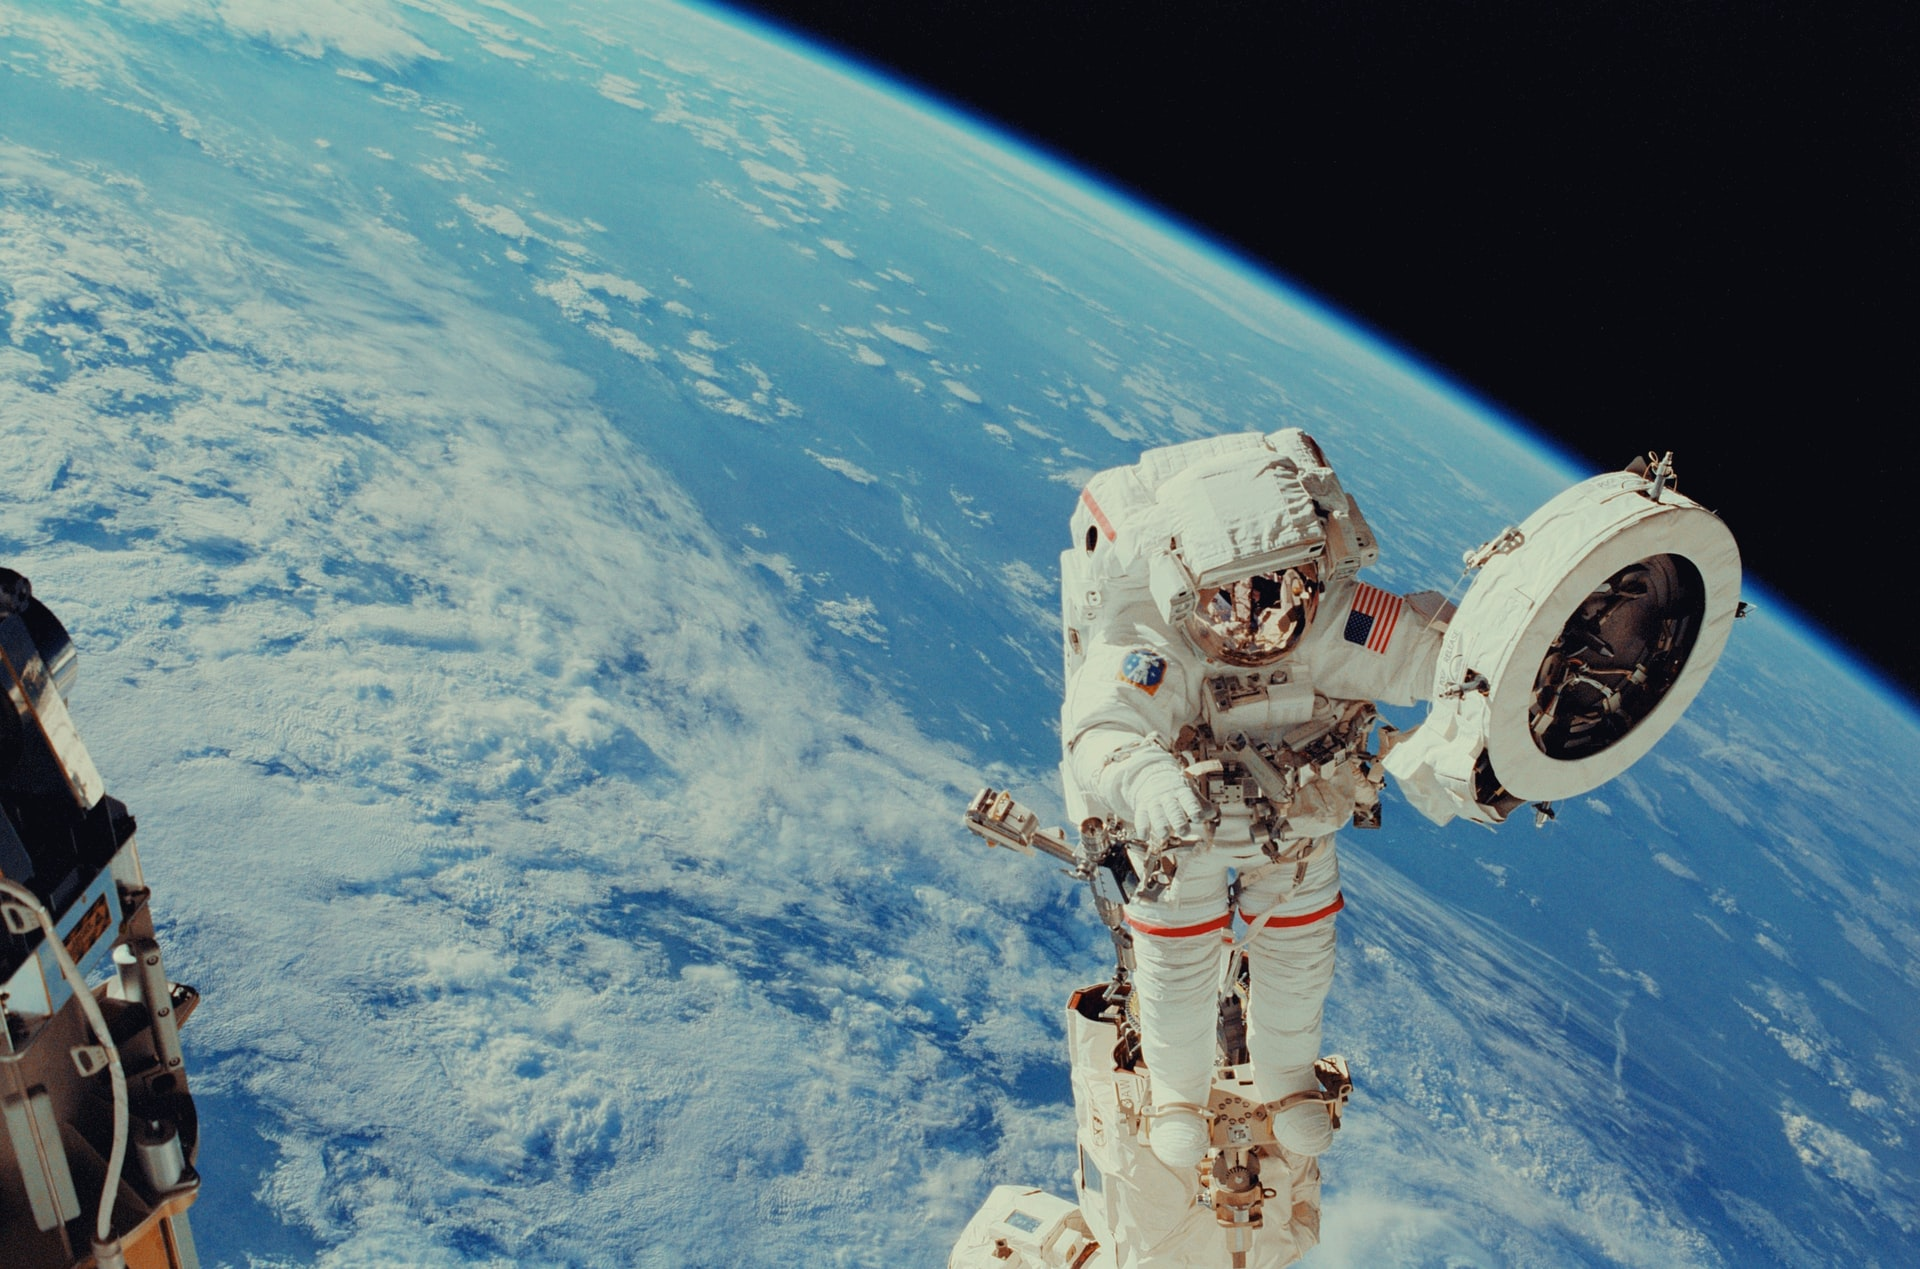 Third Part Of The ISS Experience To Feature A VR Spacewalk